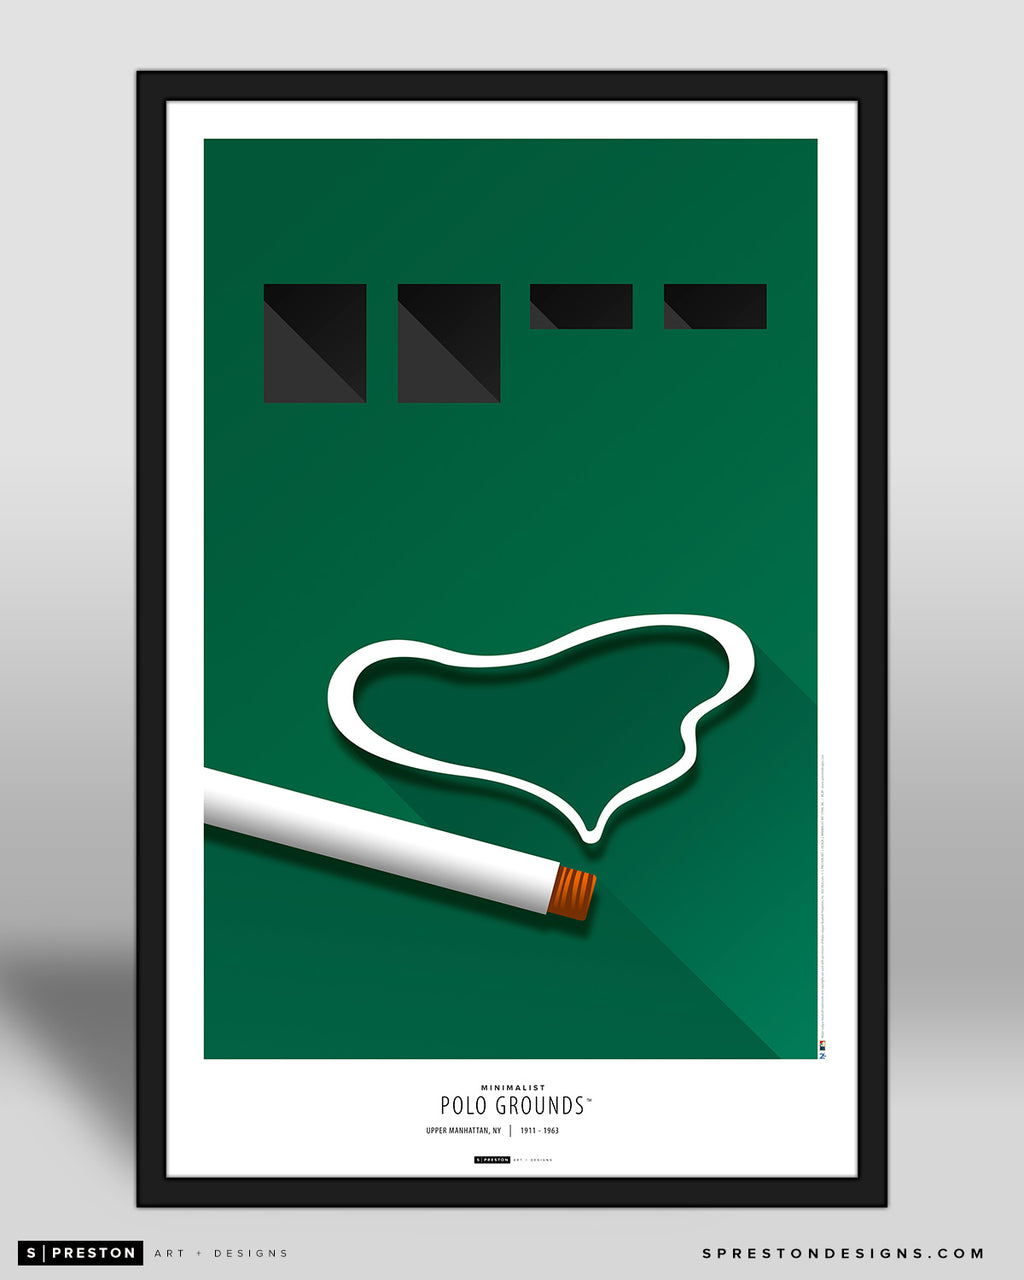 Minimalist Polo Ground Art Poster